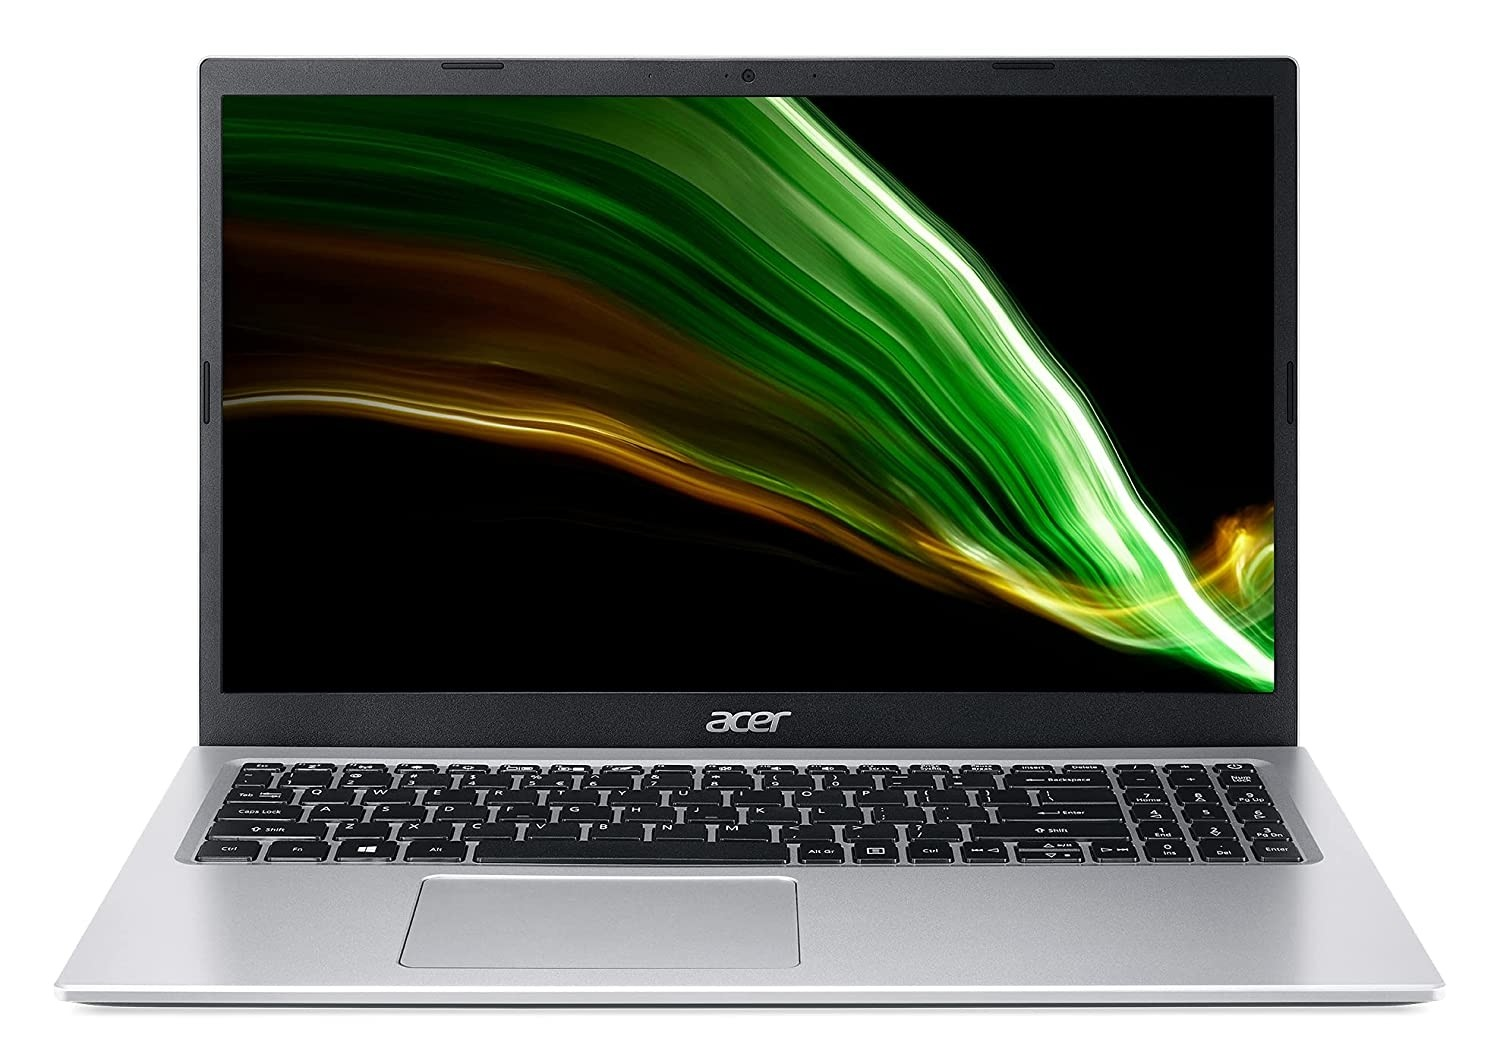 Refurbished laptops & desktops - ACER ASPIRE 3 CORE I5 11TH GENERATION PROCESSOR 15.6-INCH FULL HD ULTRA SLIM THIN AND LIGHT LAPTOP - (8 GB/1 TB HDD/WINDOWS 10 HOME/INTEL IRIS XE GRAPHIC/1.7KG/SILVER) A315-58